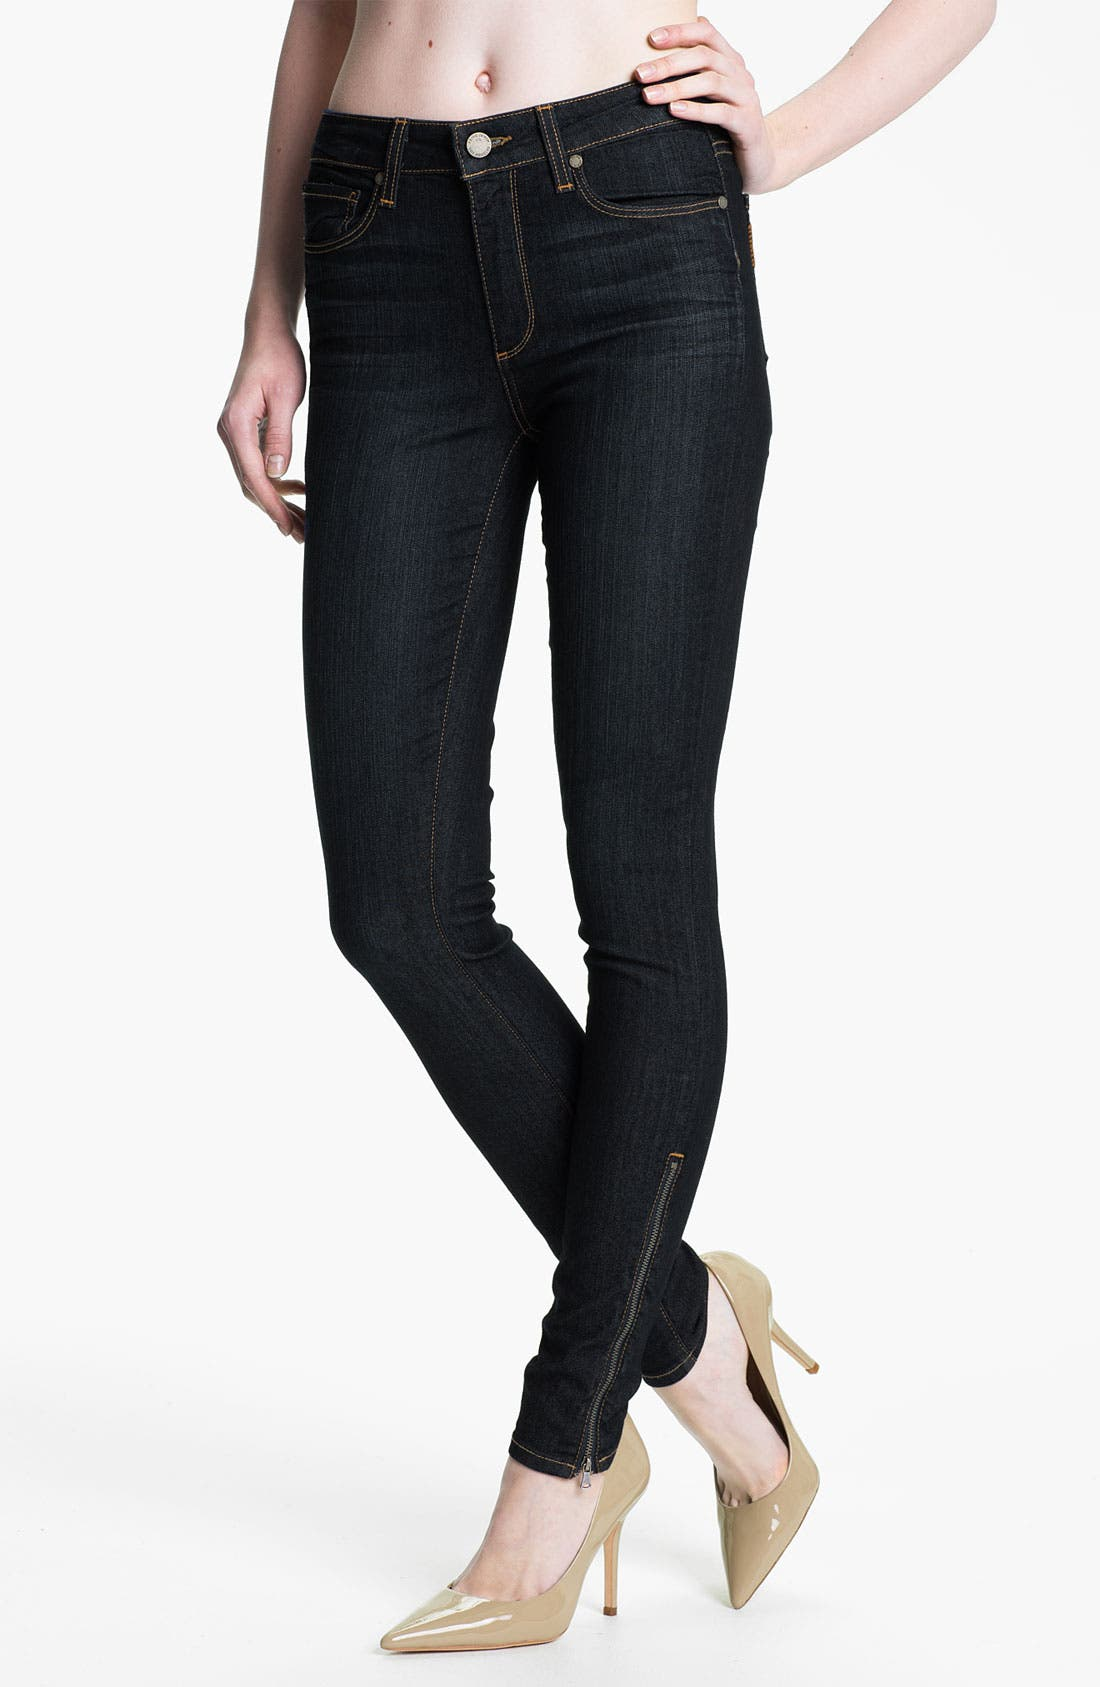 Alternate Image 1 Selected - Paige Denim 'Hoxton' Ankle Zip Skinny Jeans (Stream)